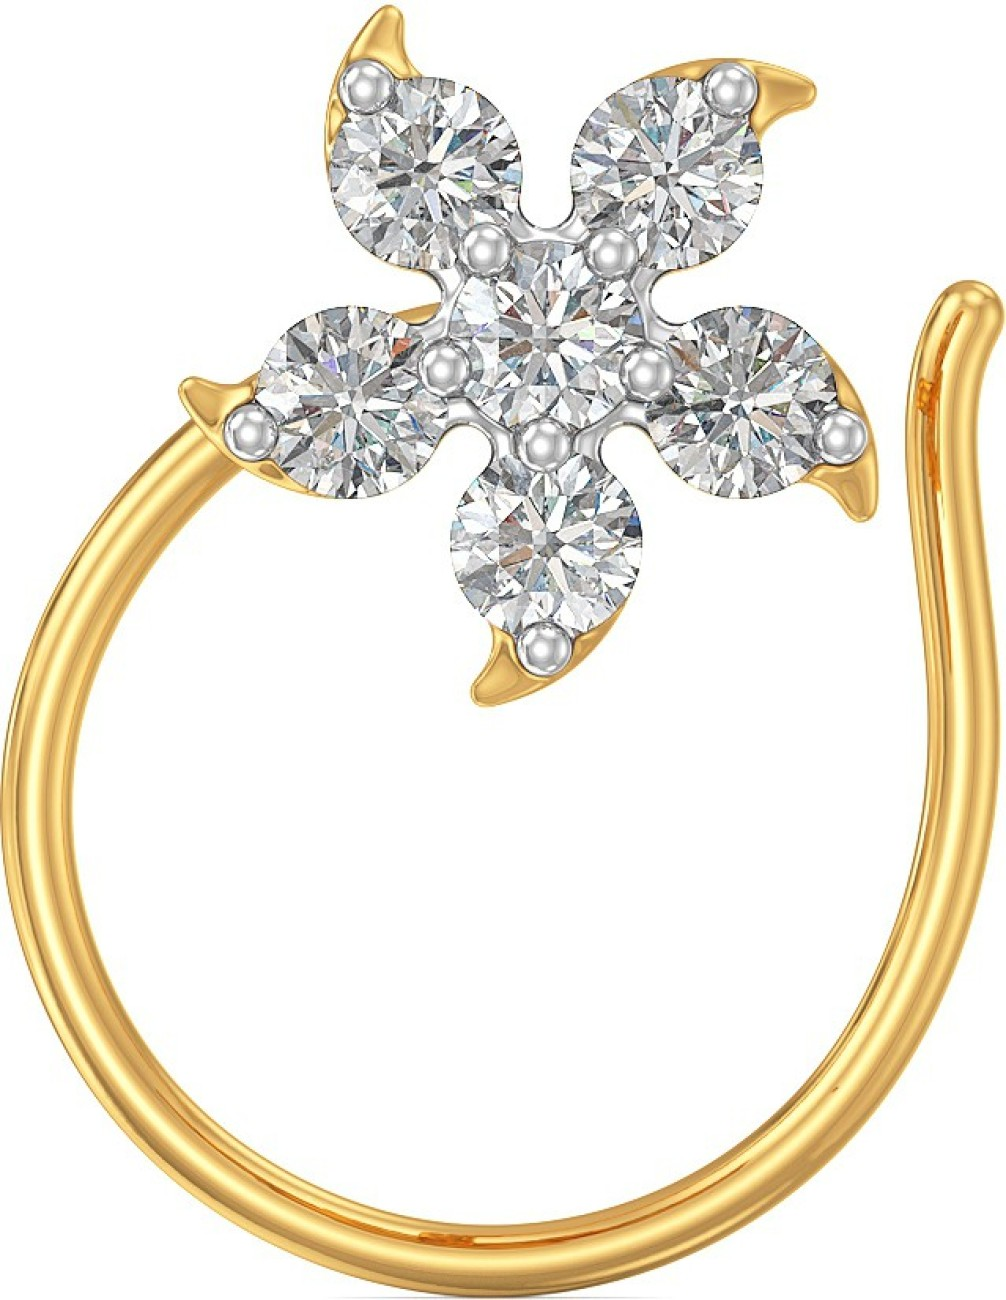 Joyalukkas Joyalukkas Pride Diamond Collection White Gold Nosepin